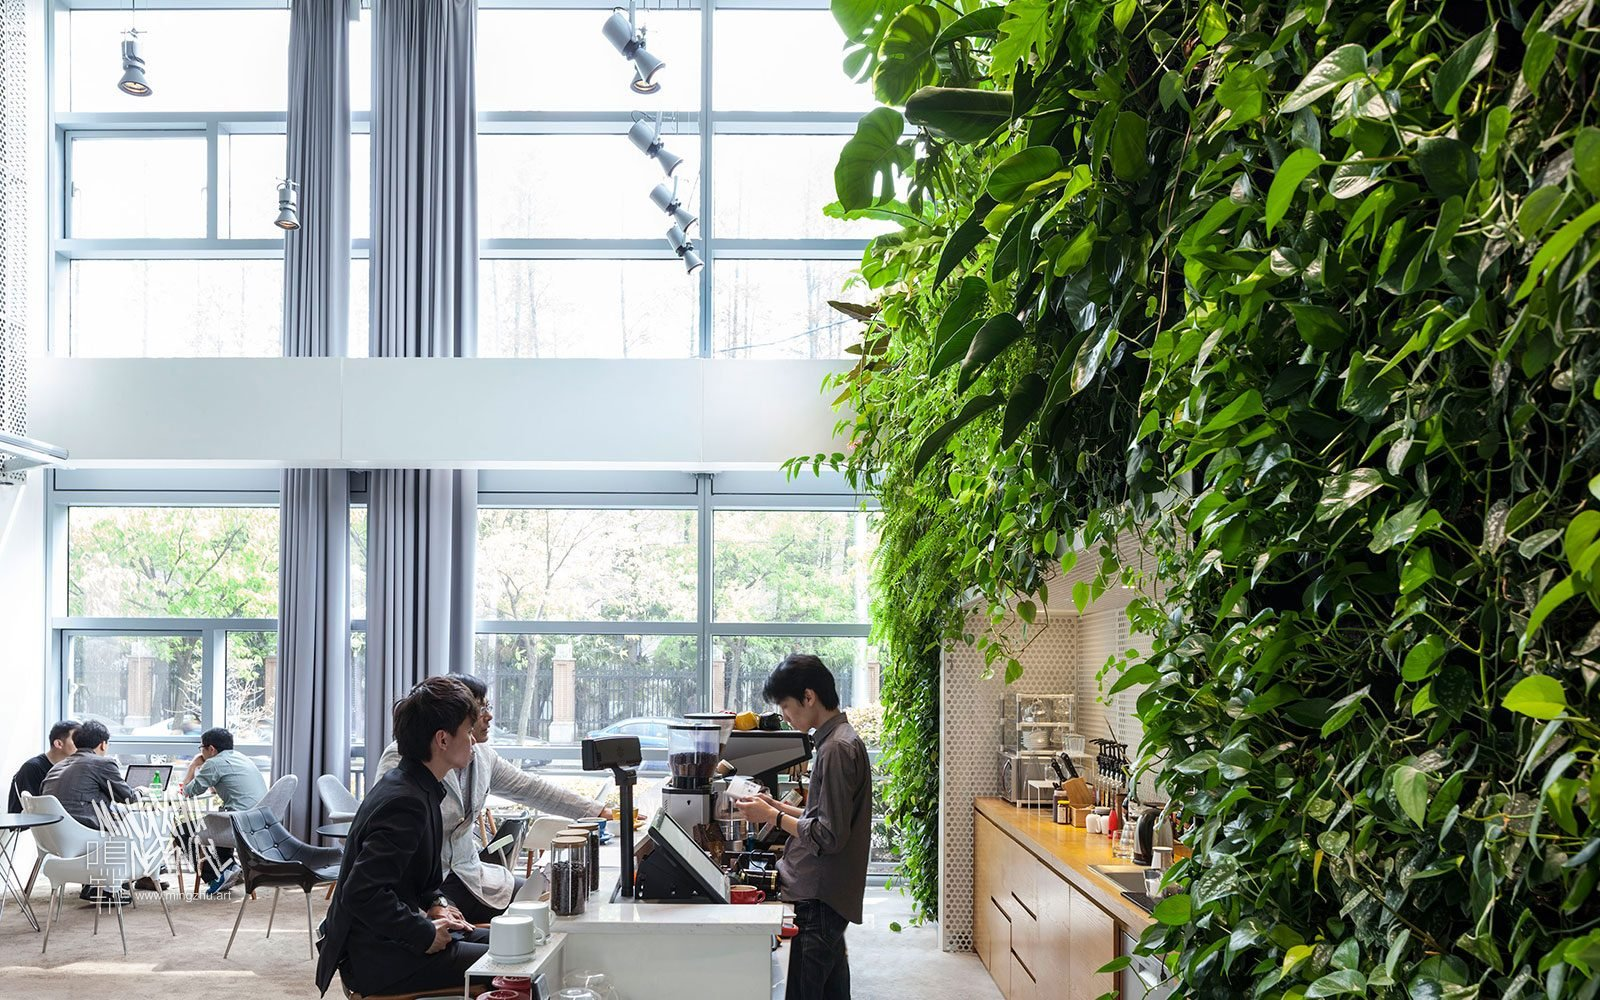 At Mingzhu Nerval, we thrive at creating the most beautiful vertical gardens in the world. For the Tongji International Design Center, we created a pretty living wall design - Shanghai, 2013.